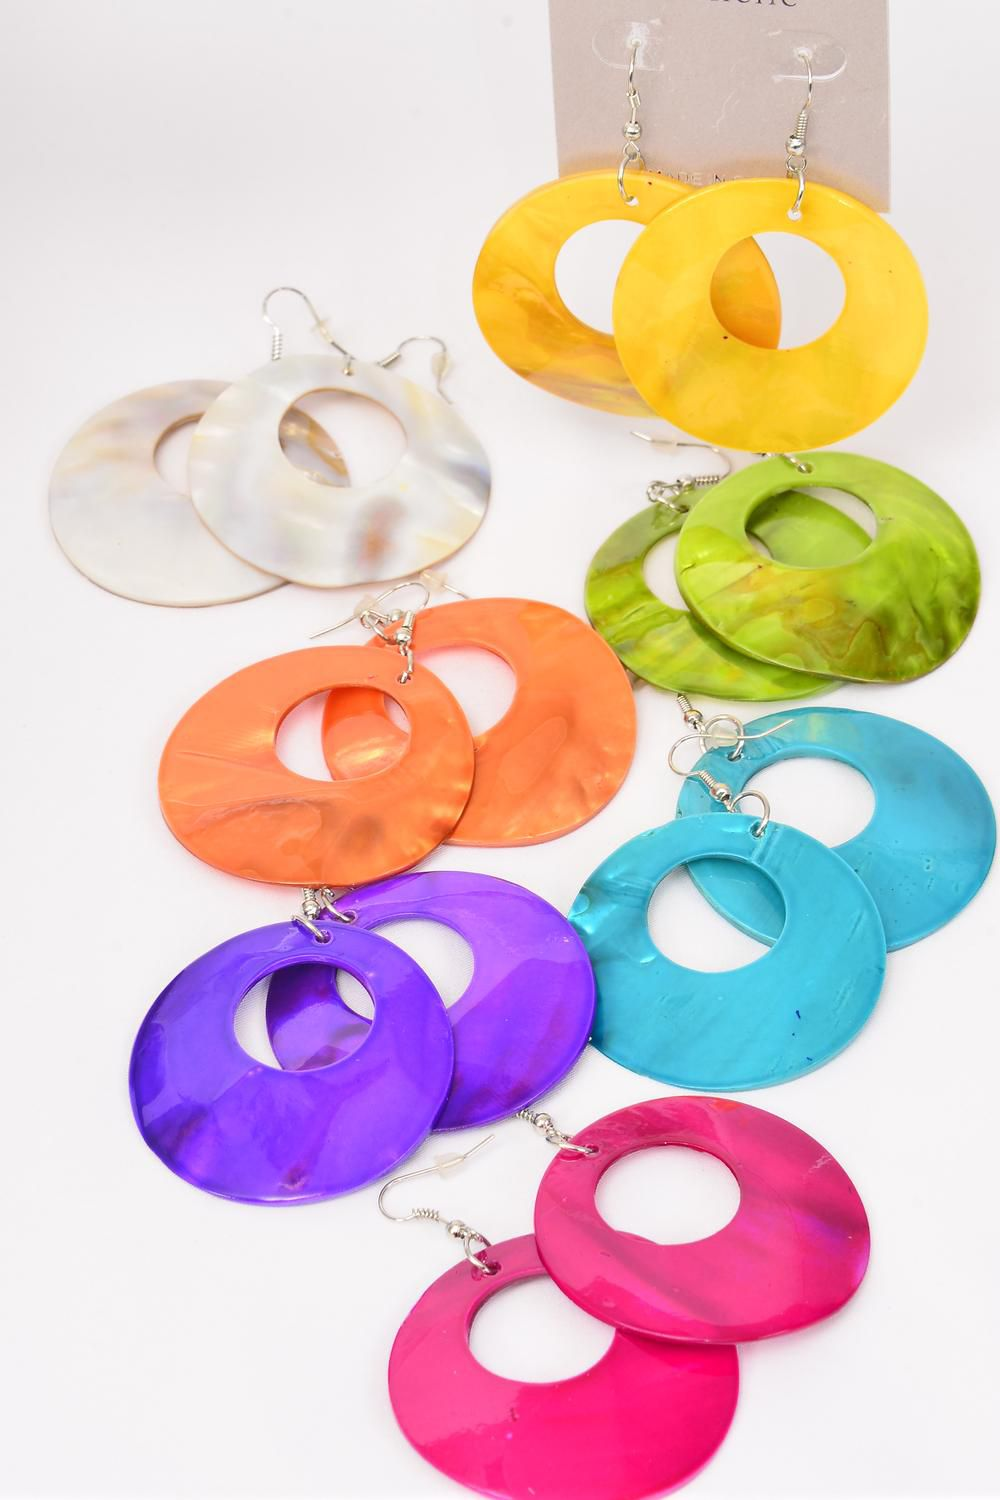 "Earrings Seashell Solid Color Mix/DZ **Fish Hook** Size-2"",2 Fuchsia,2 Purple,2 White,2 Yellow,2 Blue,1 Orange,1 Lime,7 color Asst,Earring Card & OPP bag & UPC Code"